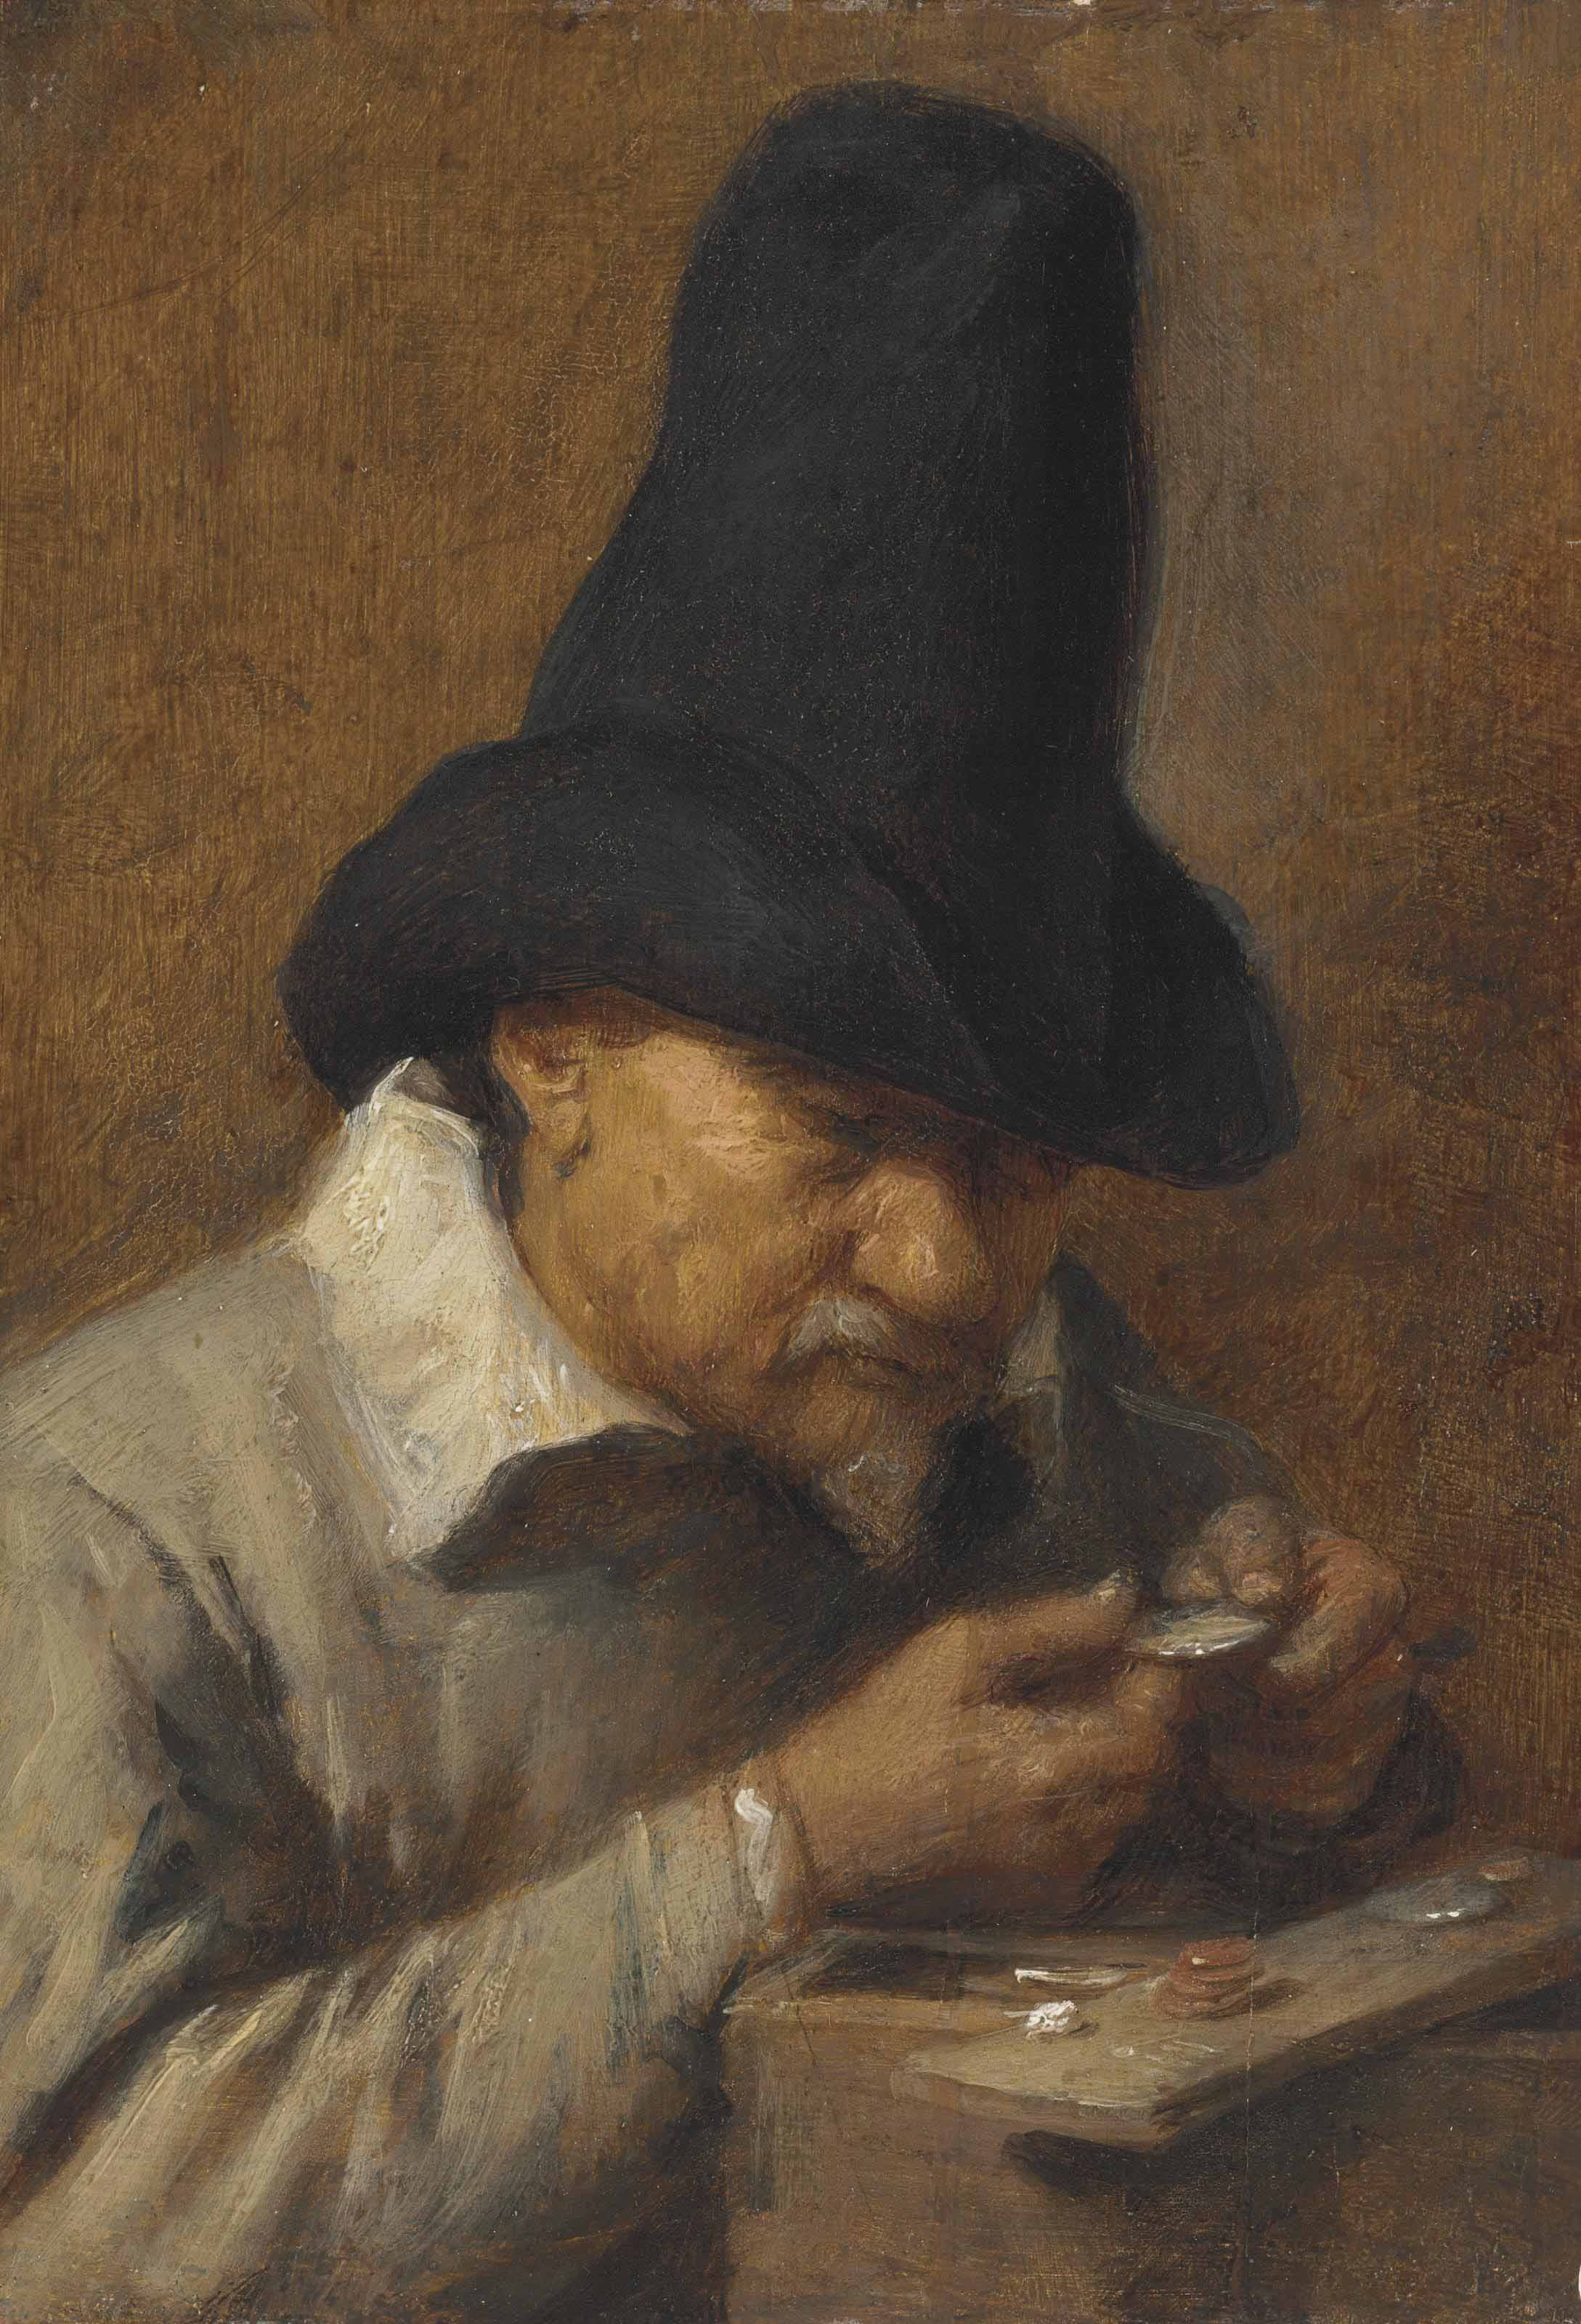 Attributed to Adriaen Brouwer